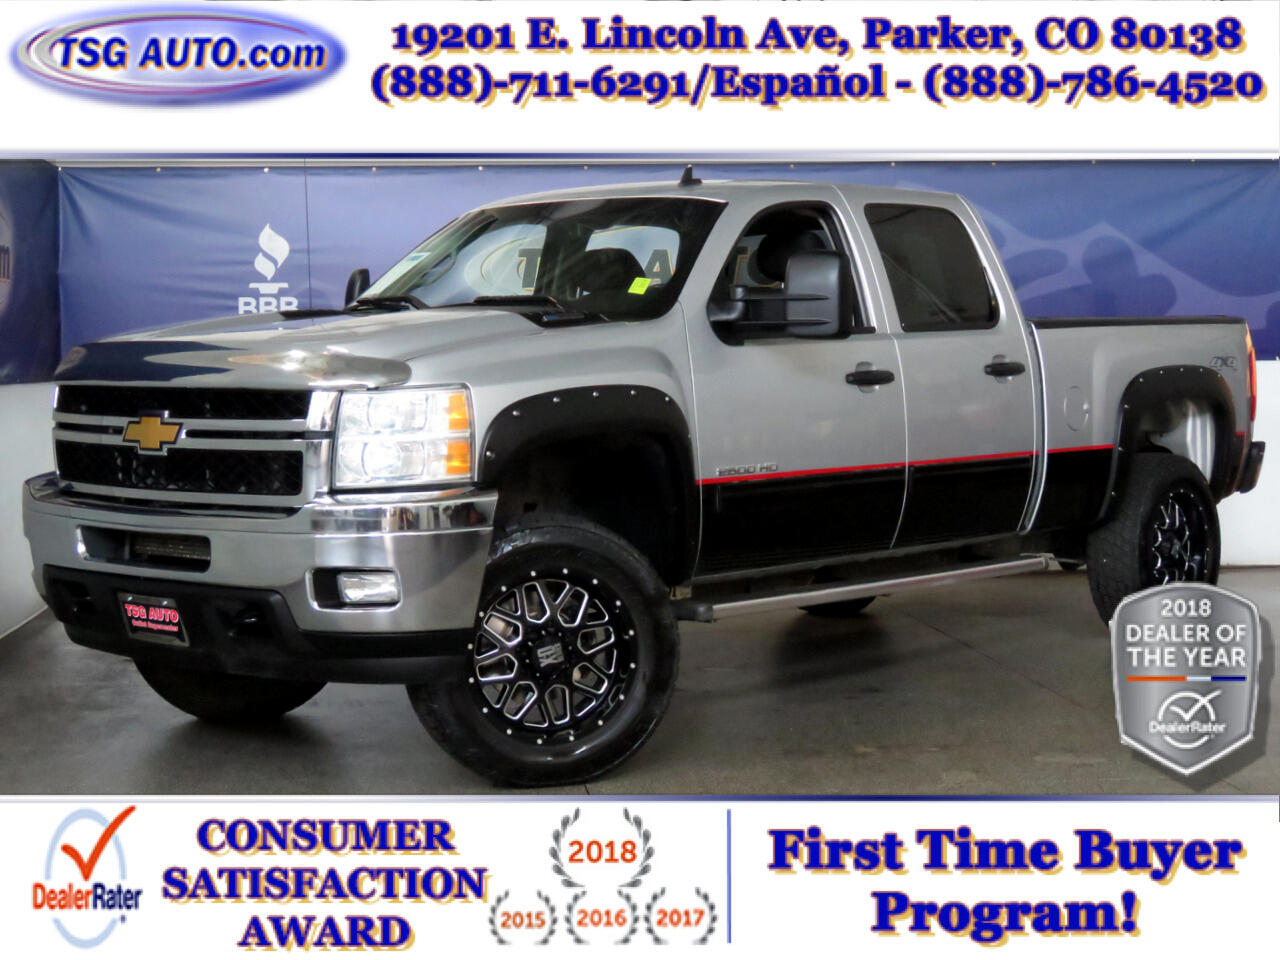 2014 Chevrolet Silverado 2500HD 4WD Crew Cab LT W/Custom Lift/Wheels/Tires